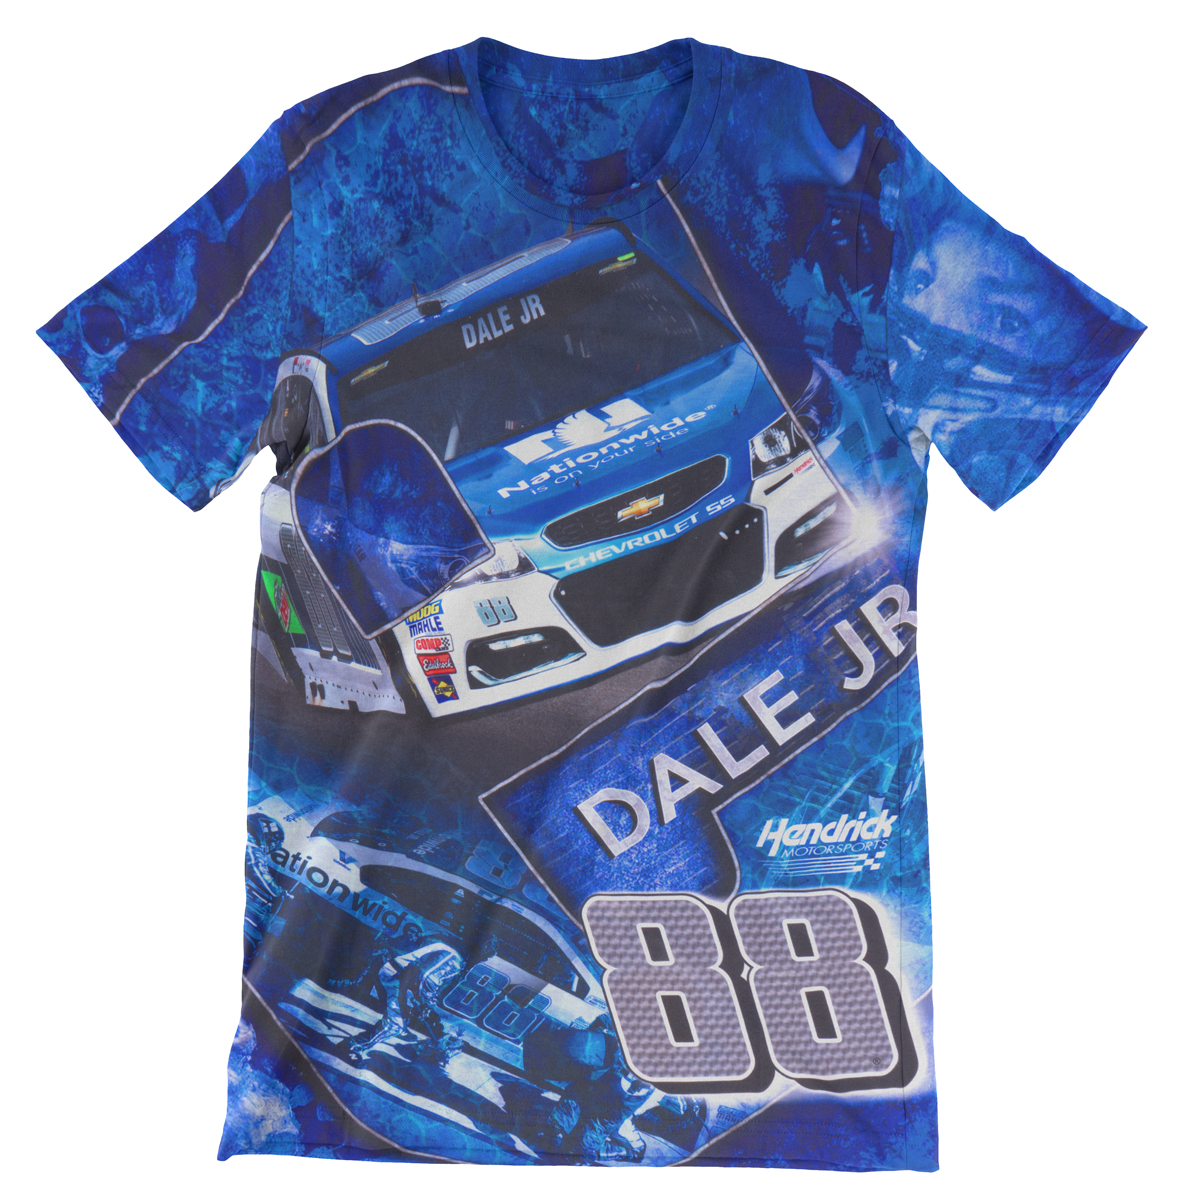 Dale Earnhardt Jr Total Print T-shirt